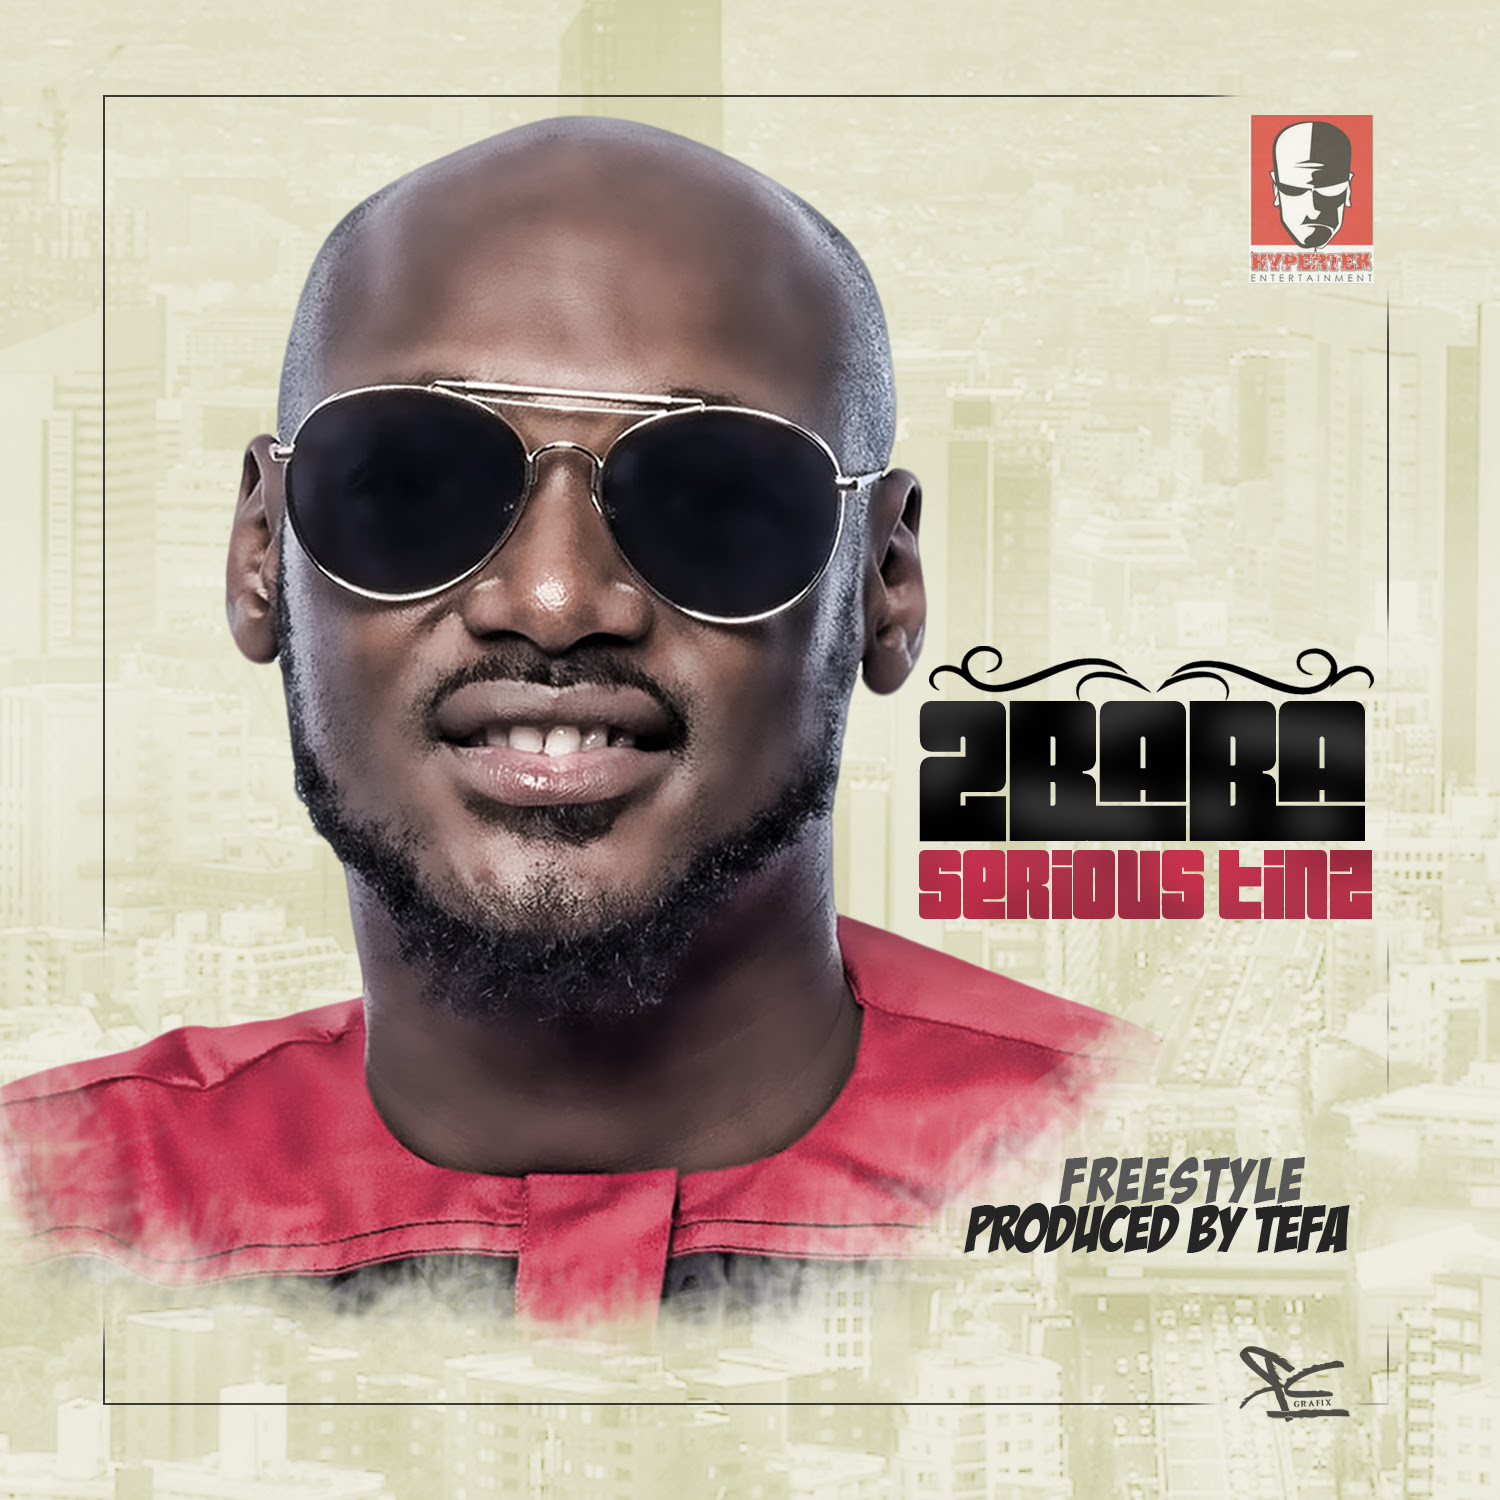 2baba serious tins mp3bullet